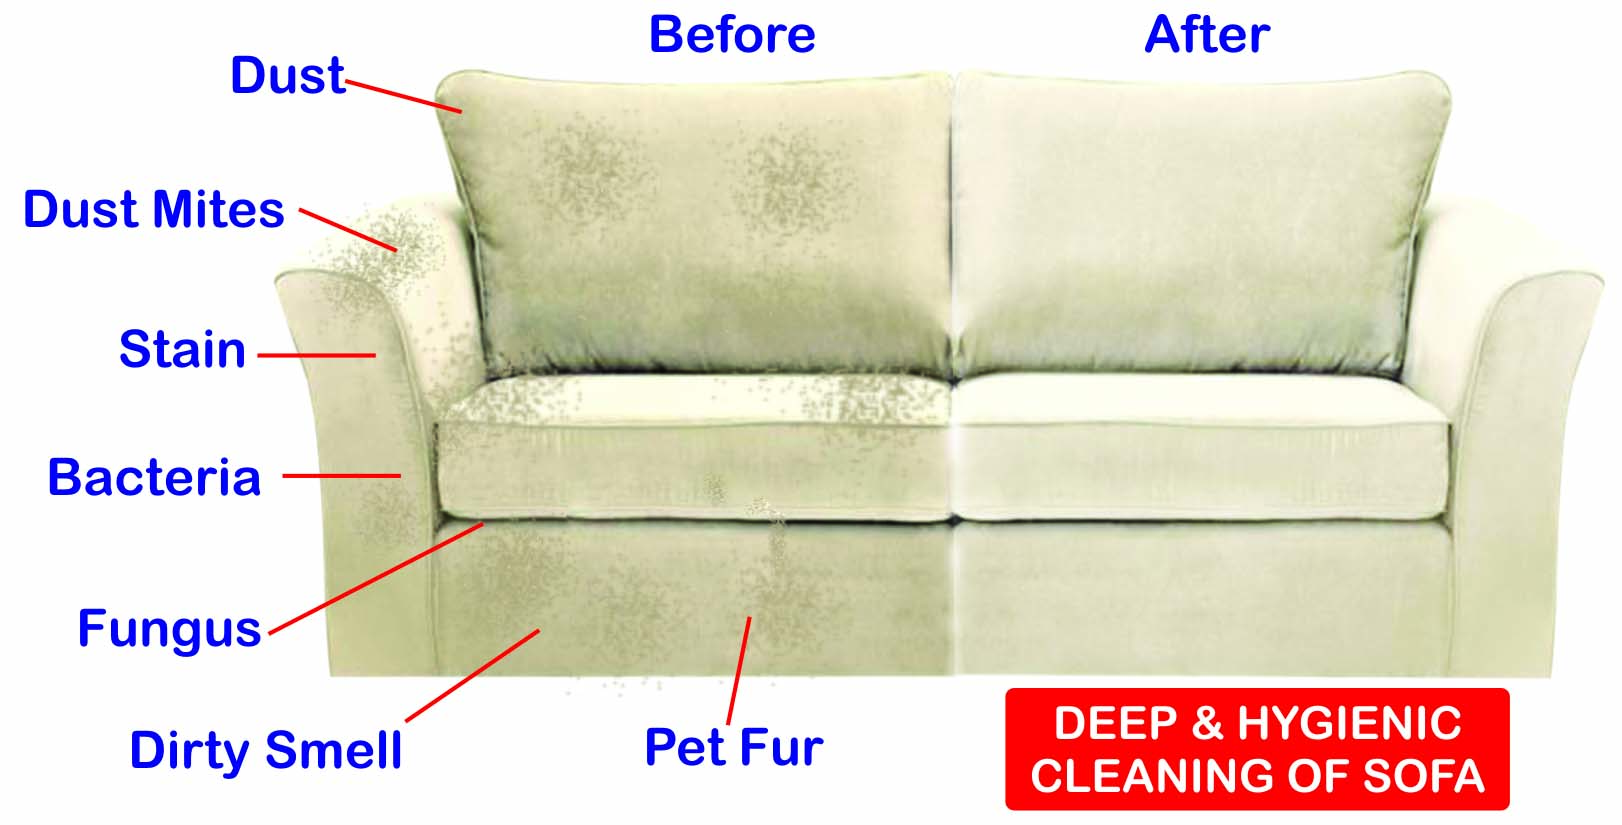 Sofa Cleaning Service Services Brooklyn